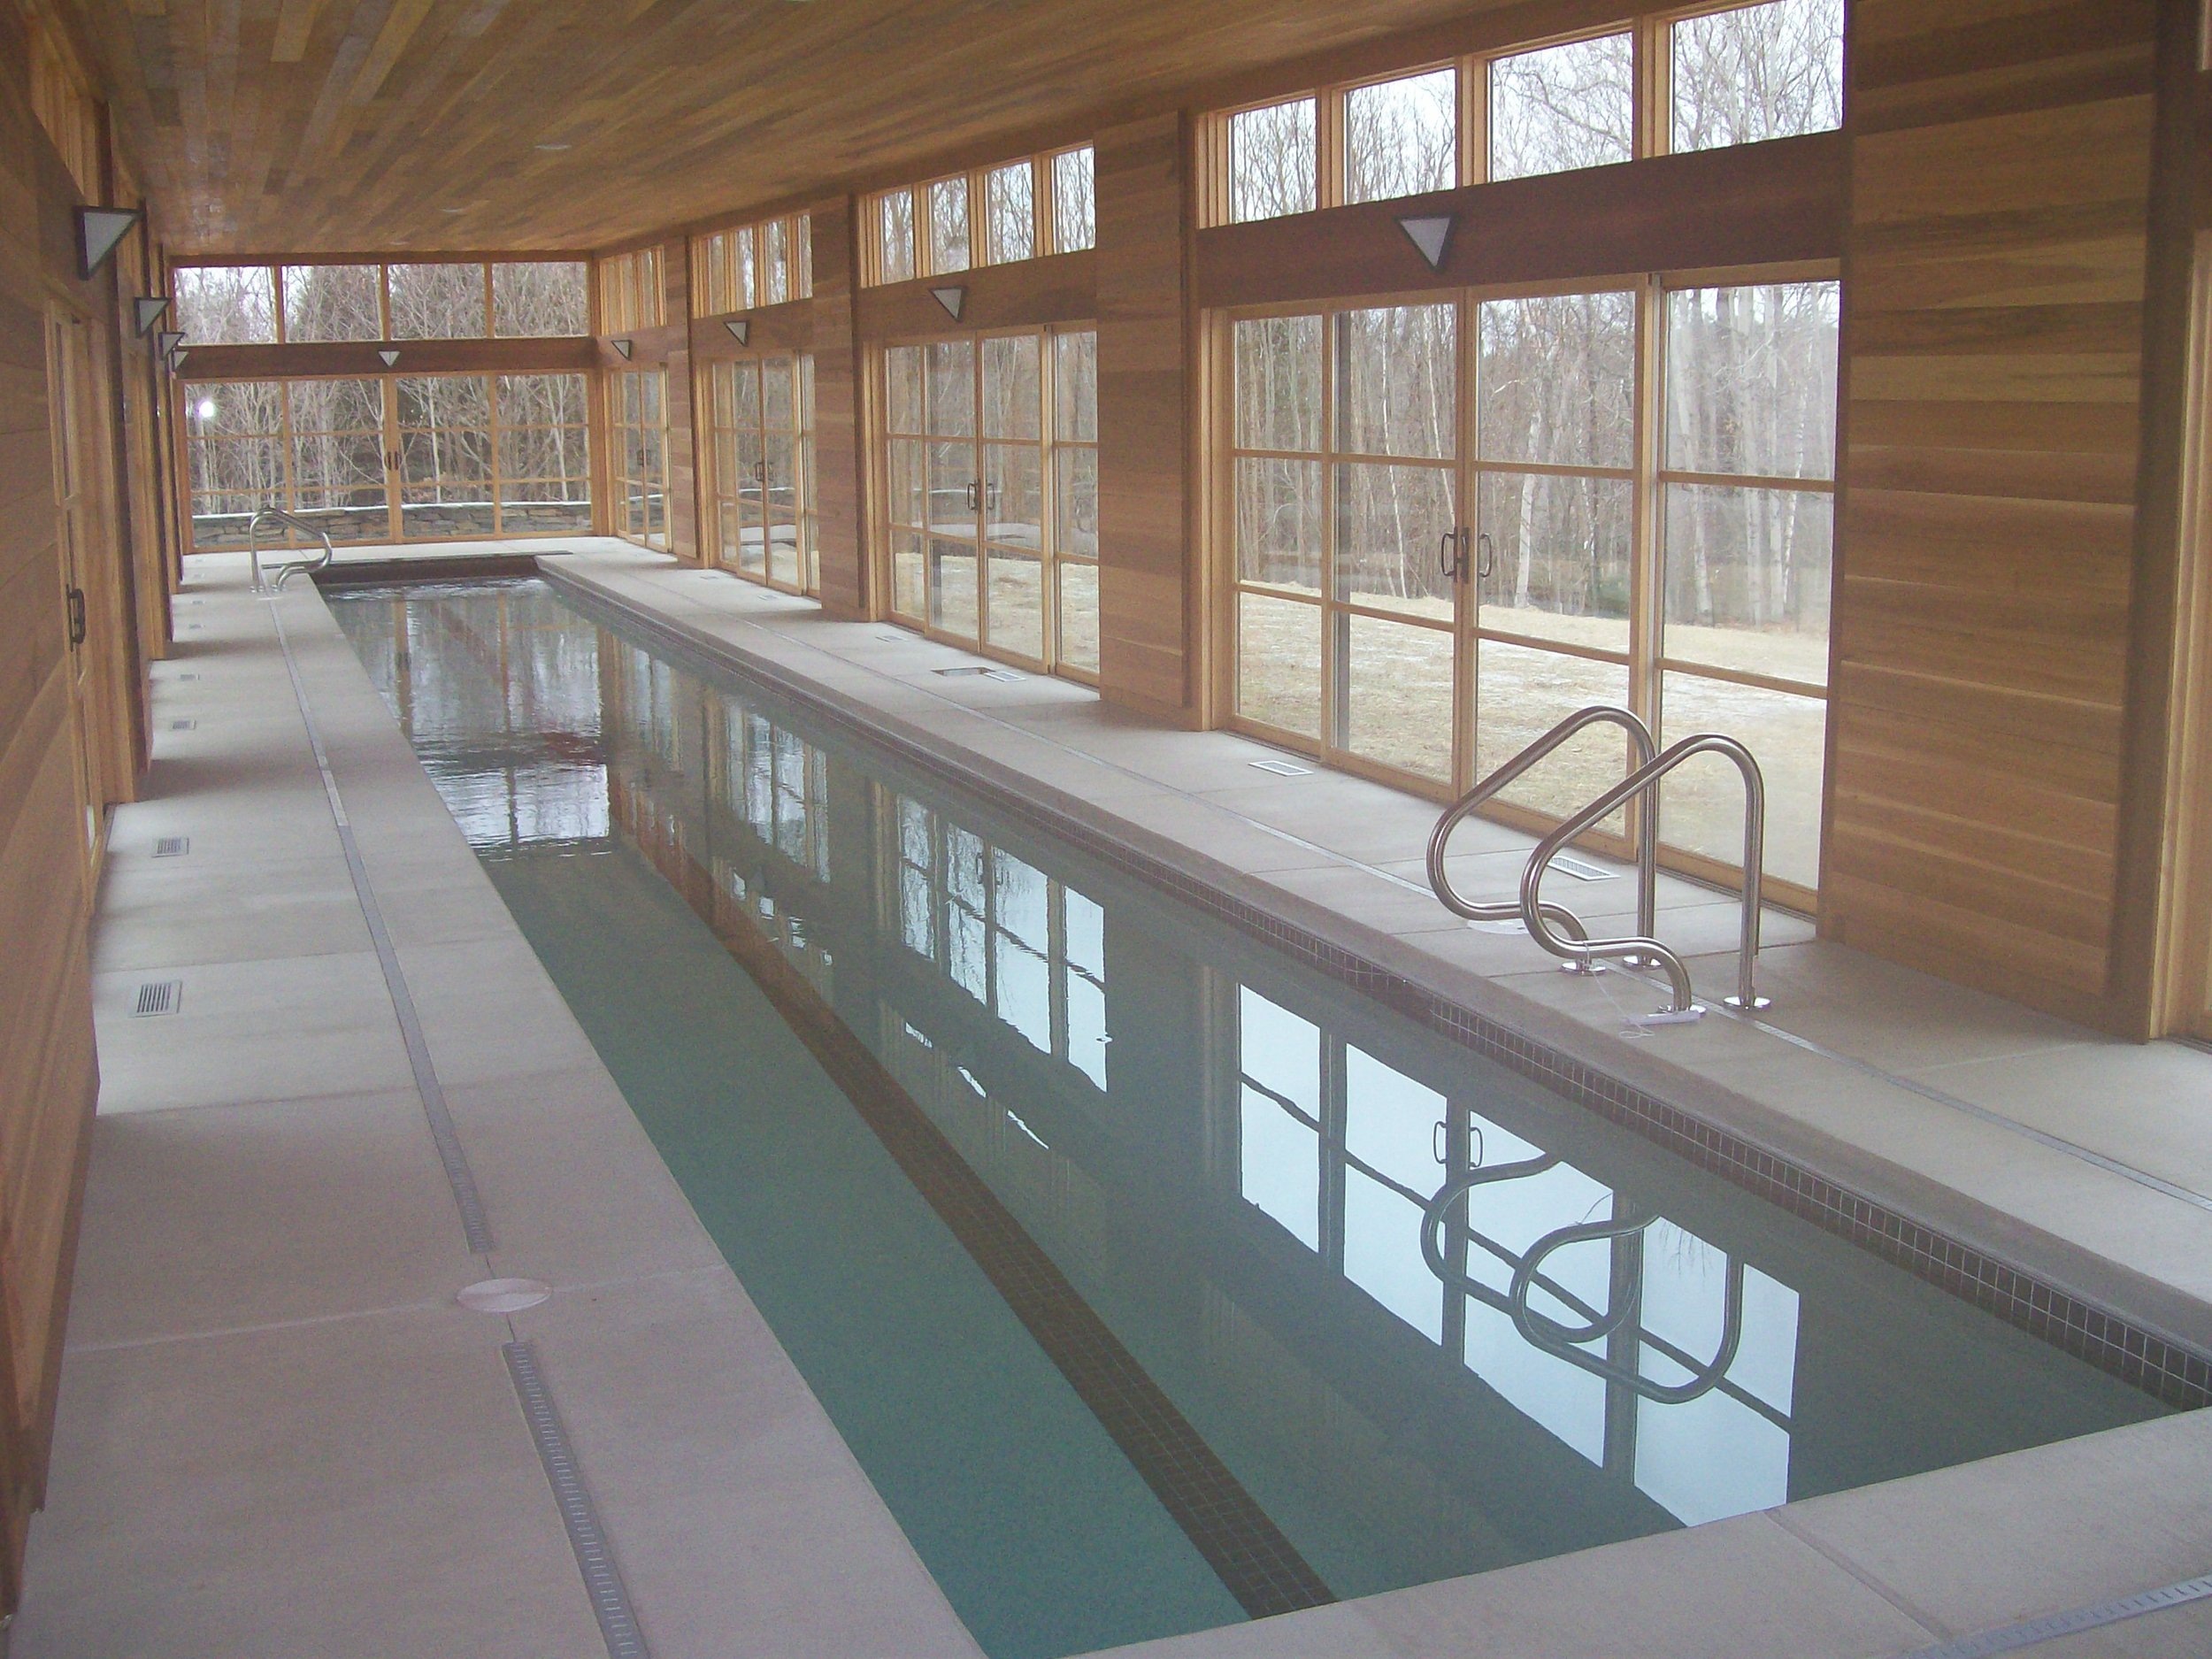 berman pool 3.JPG